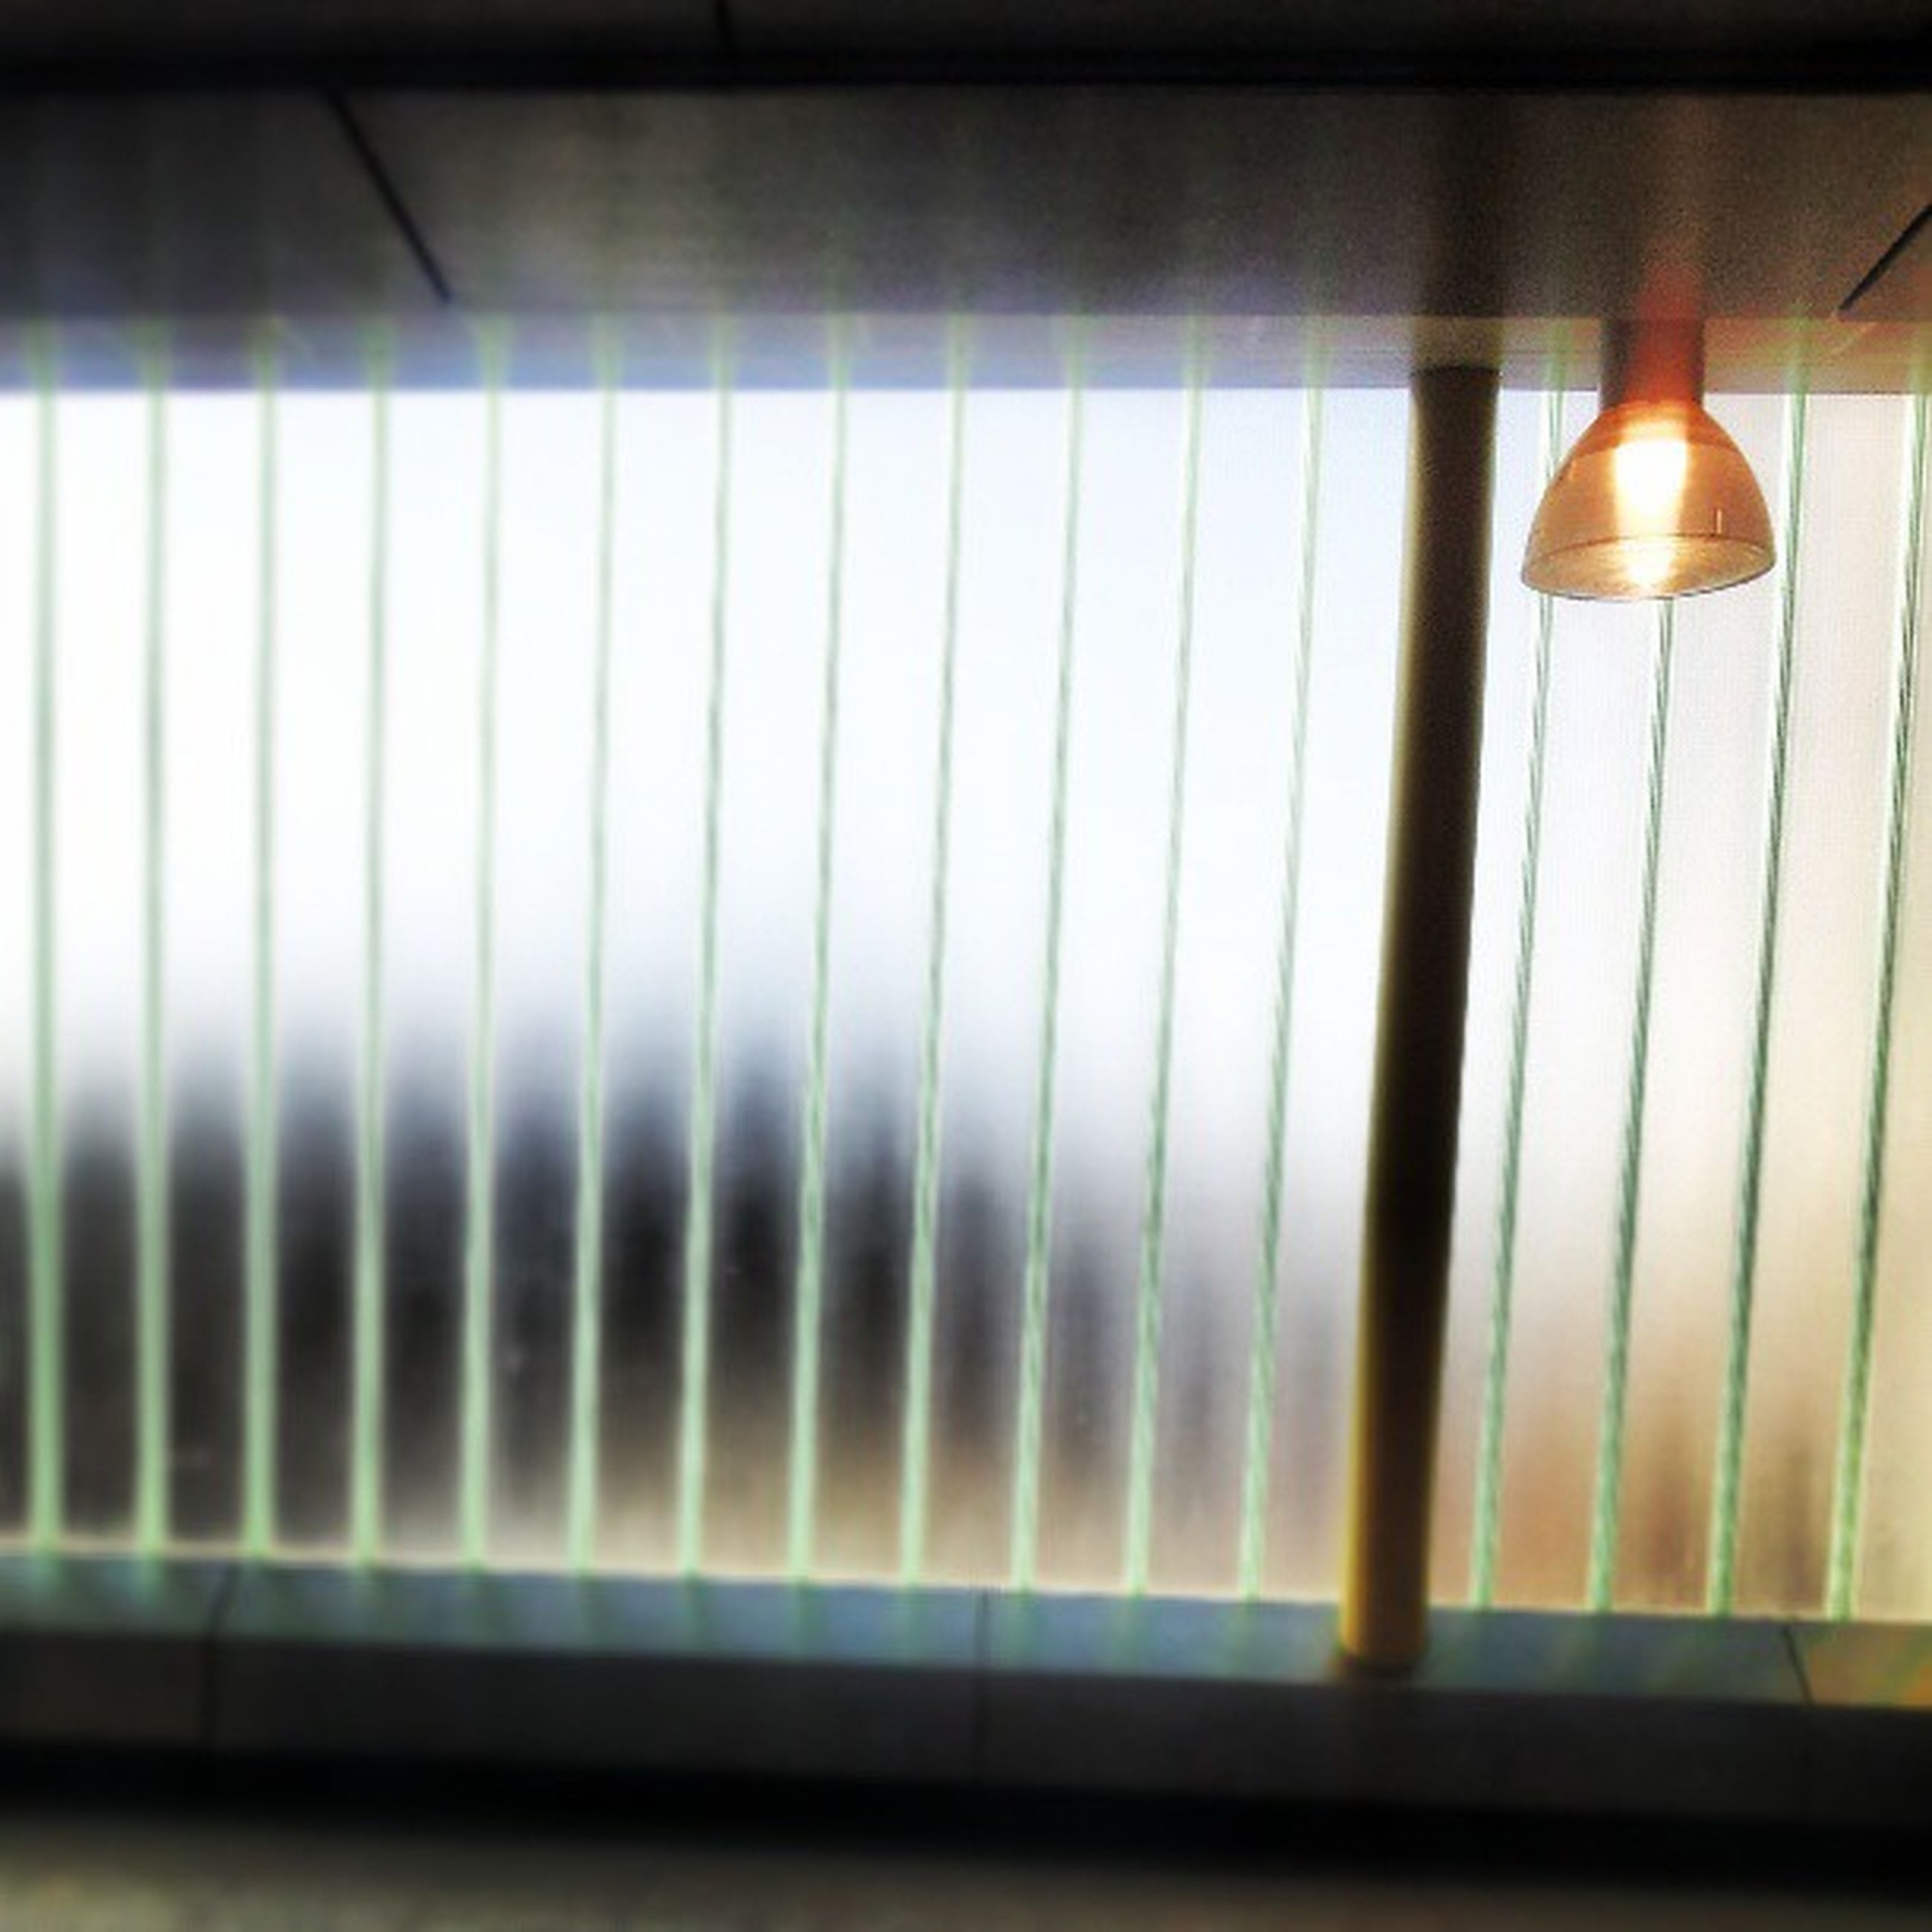 indoors, window, home interior, illuminated, glass - material, transparent, reflection, pattern, close-up, no people, lighting equipment, wall - building feature, blinds, absence, shadow, empty, domestic room, table, curtain, wall